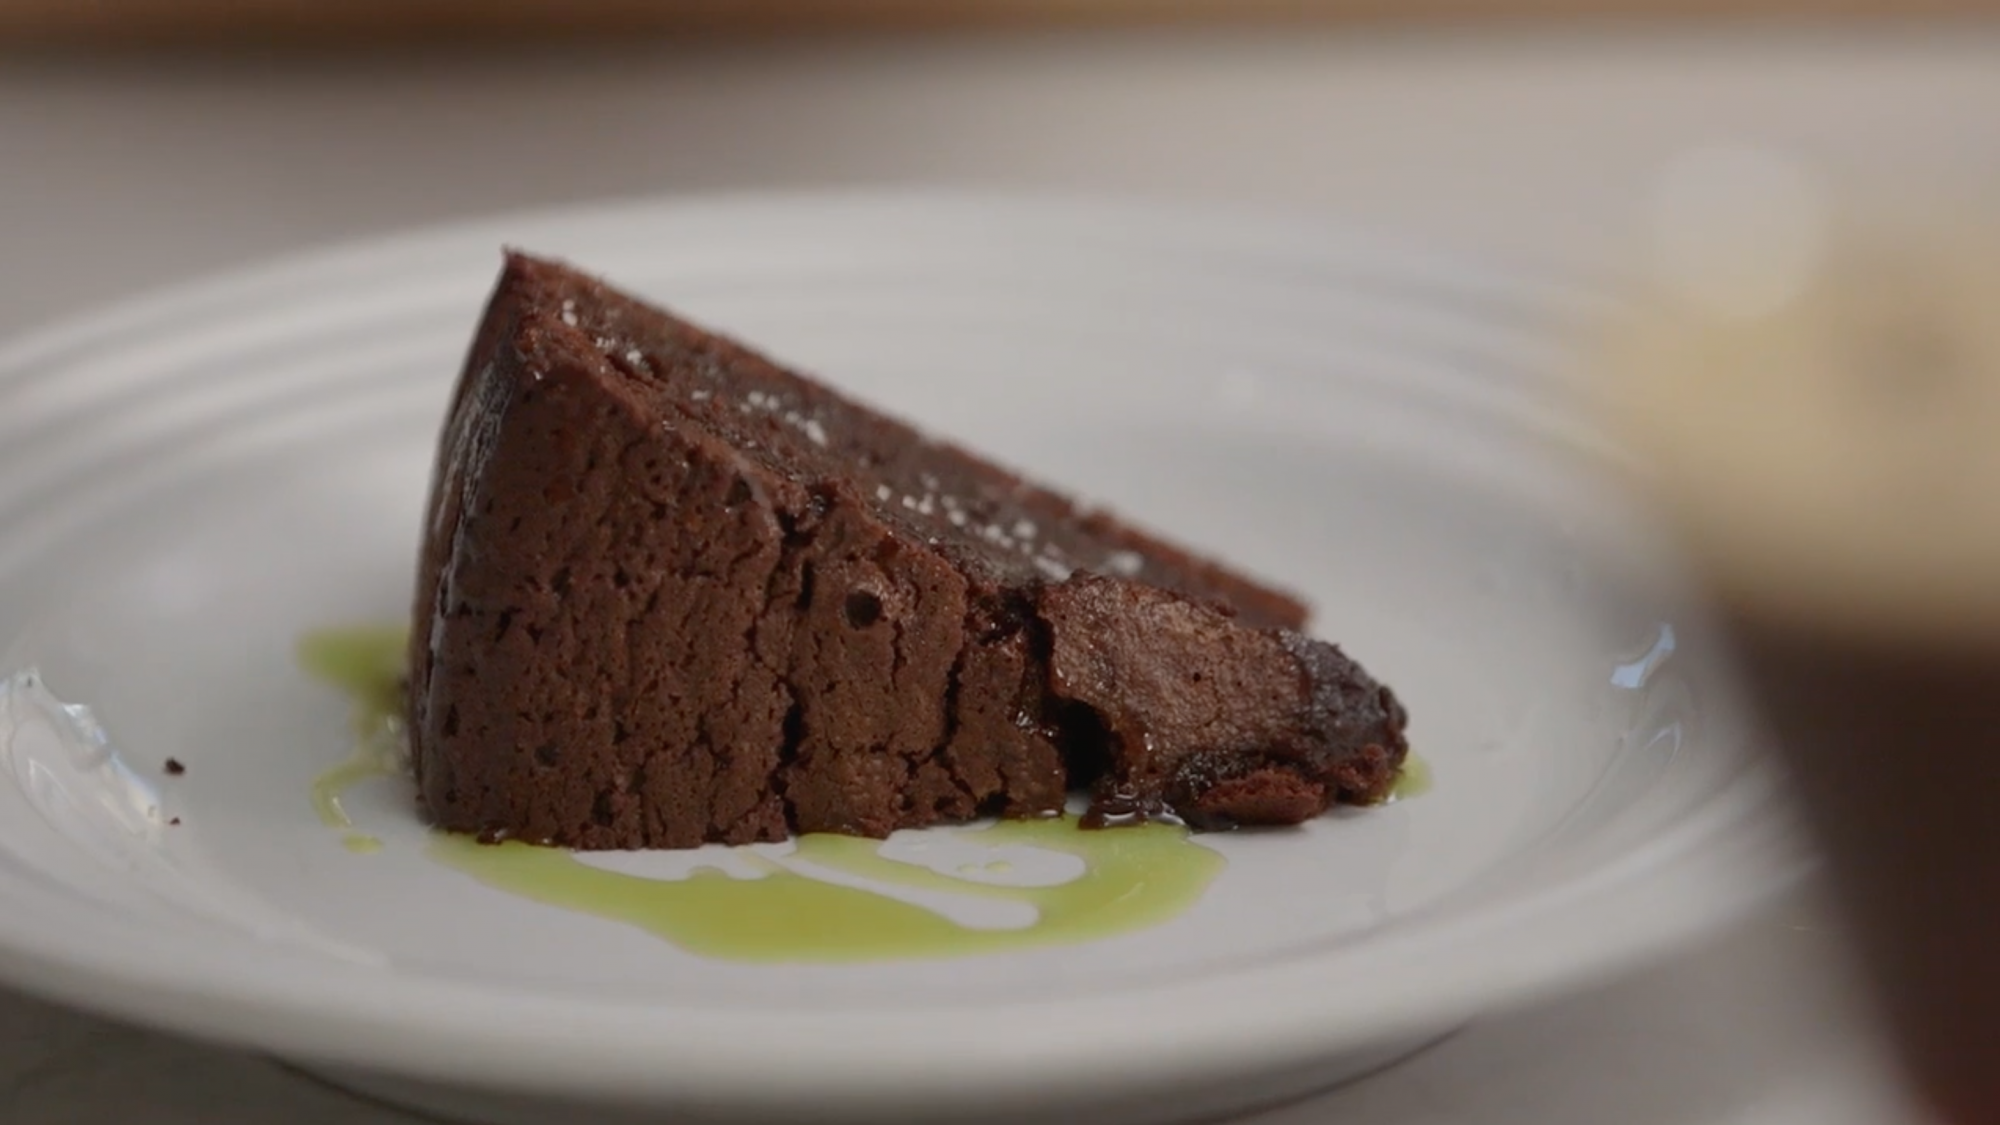 ludo-lefebvre-chocolate-cake-FT-BLOG1117